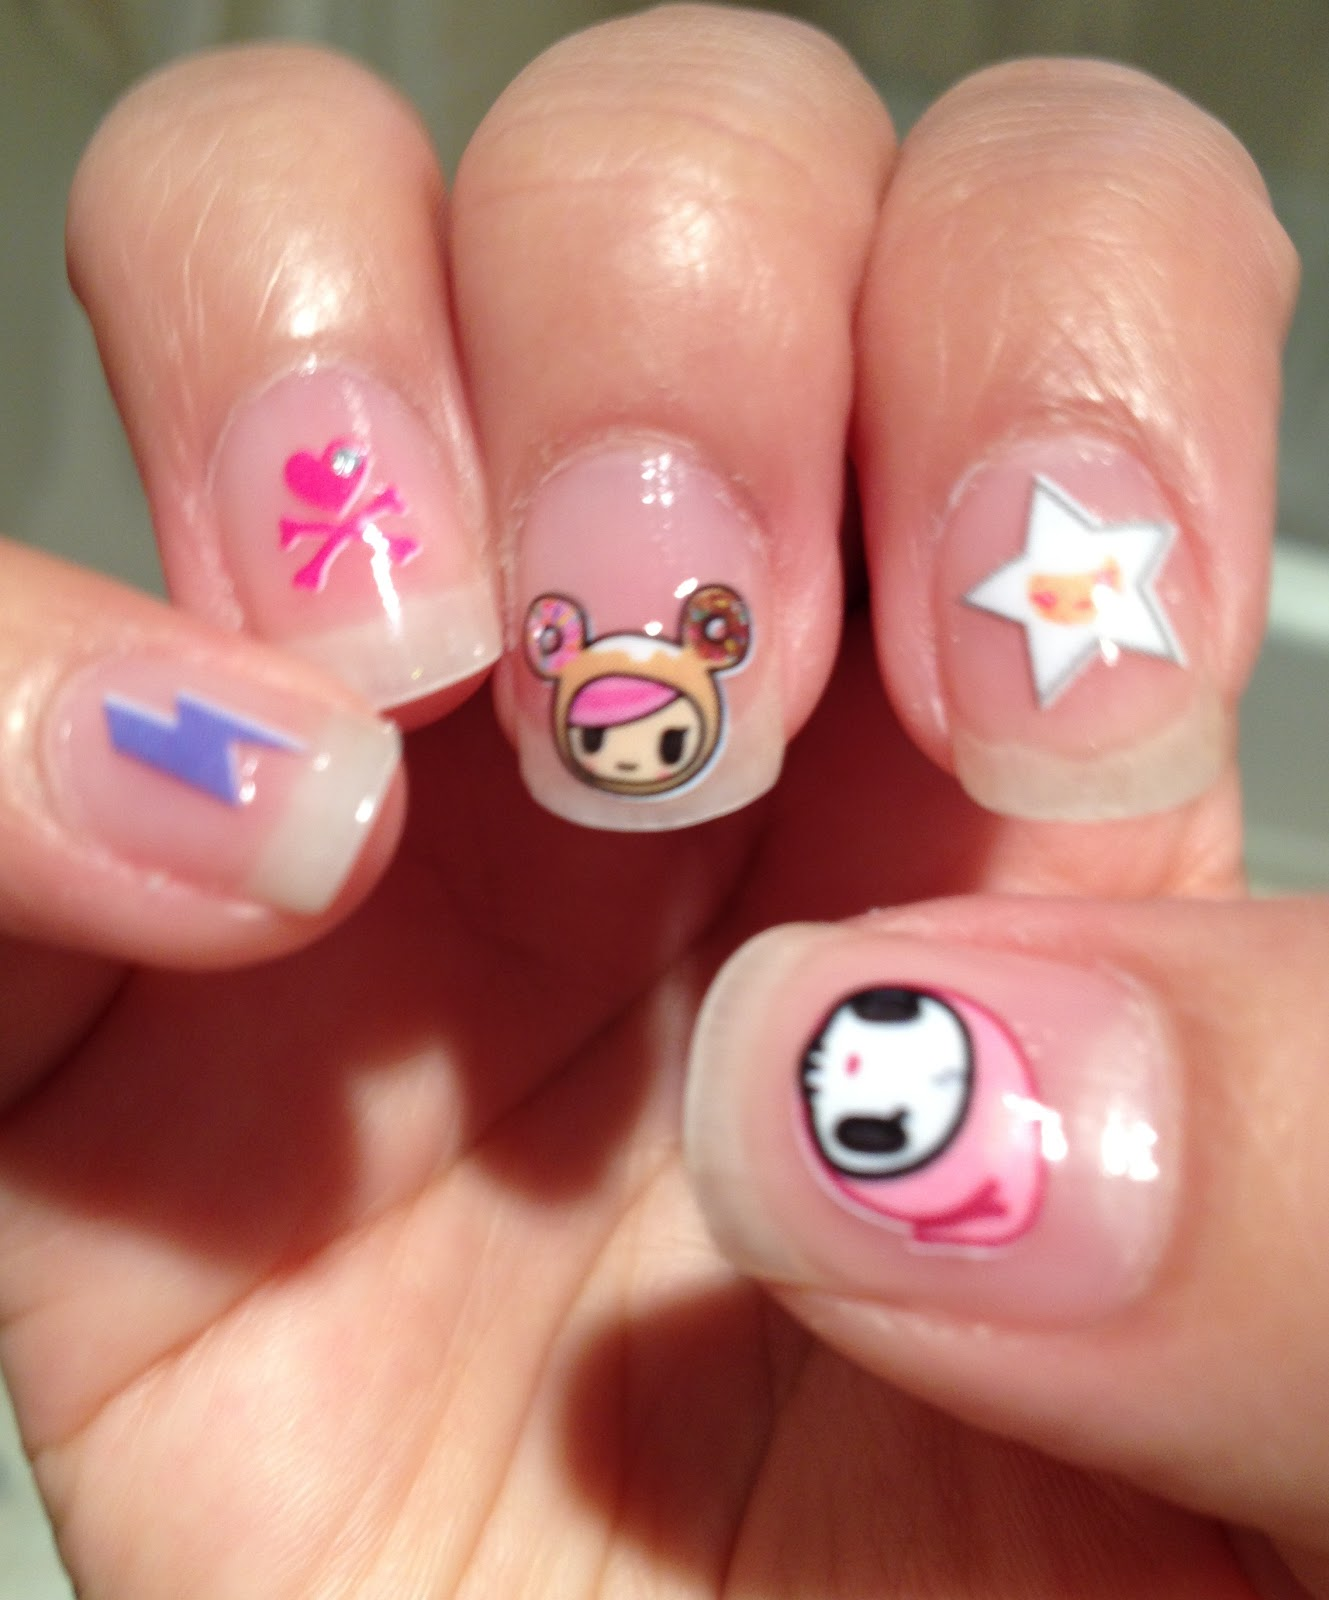 Old Fashioned Nail Styles For Kids Crest - Nail Art Design Ideas ...